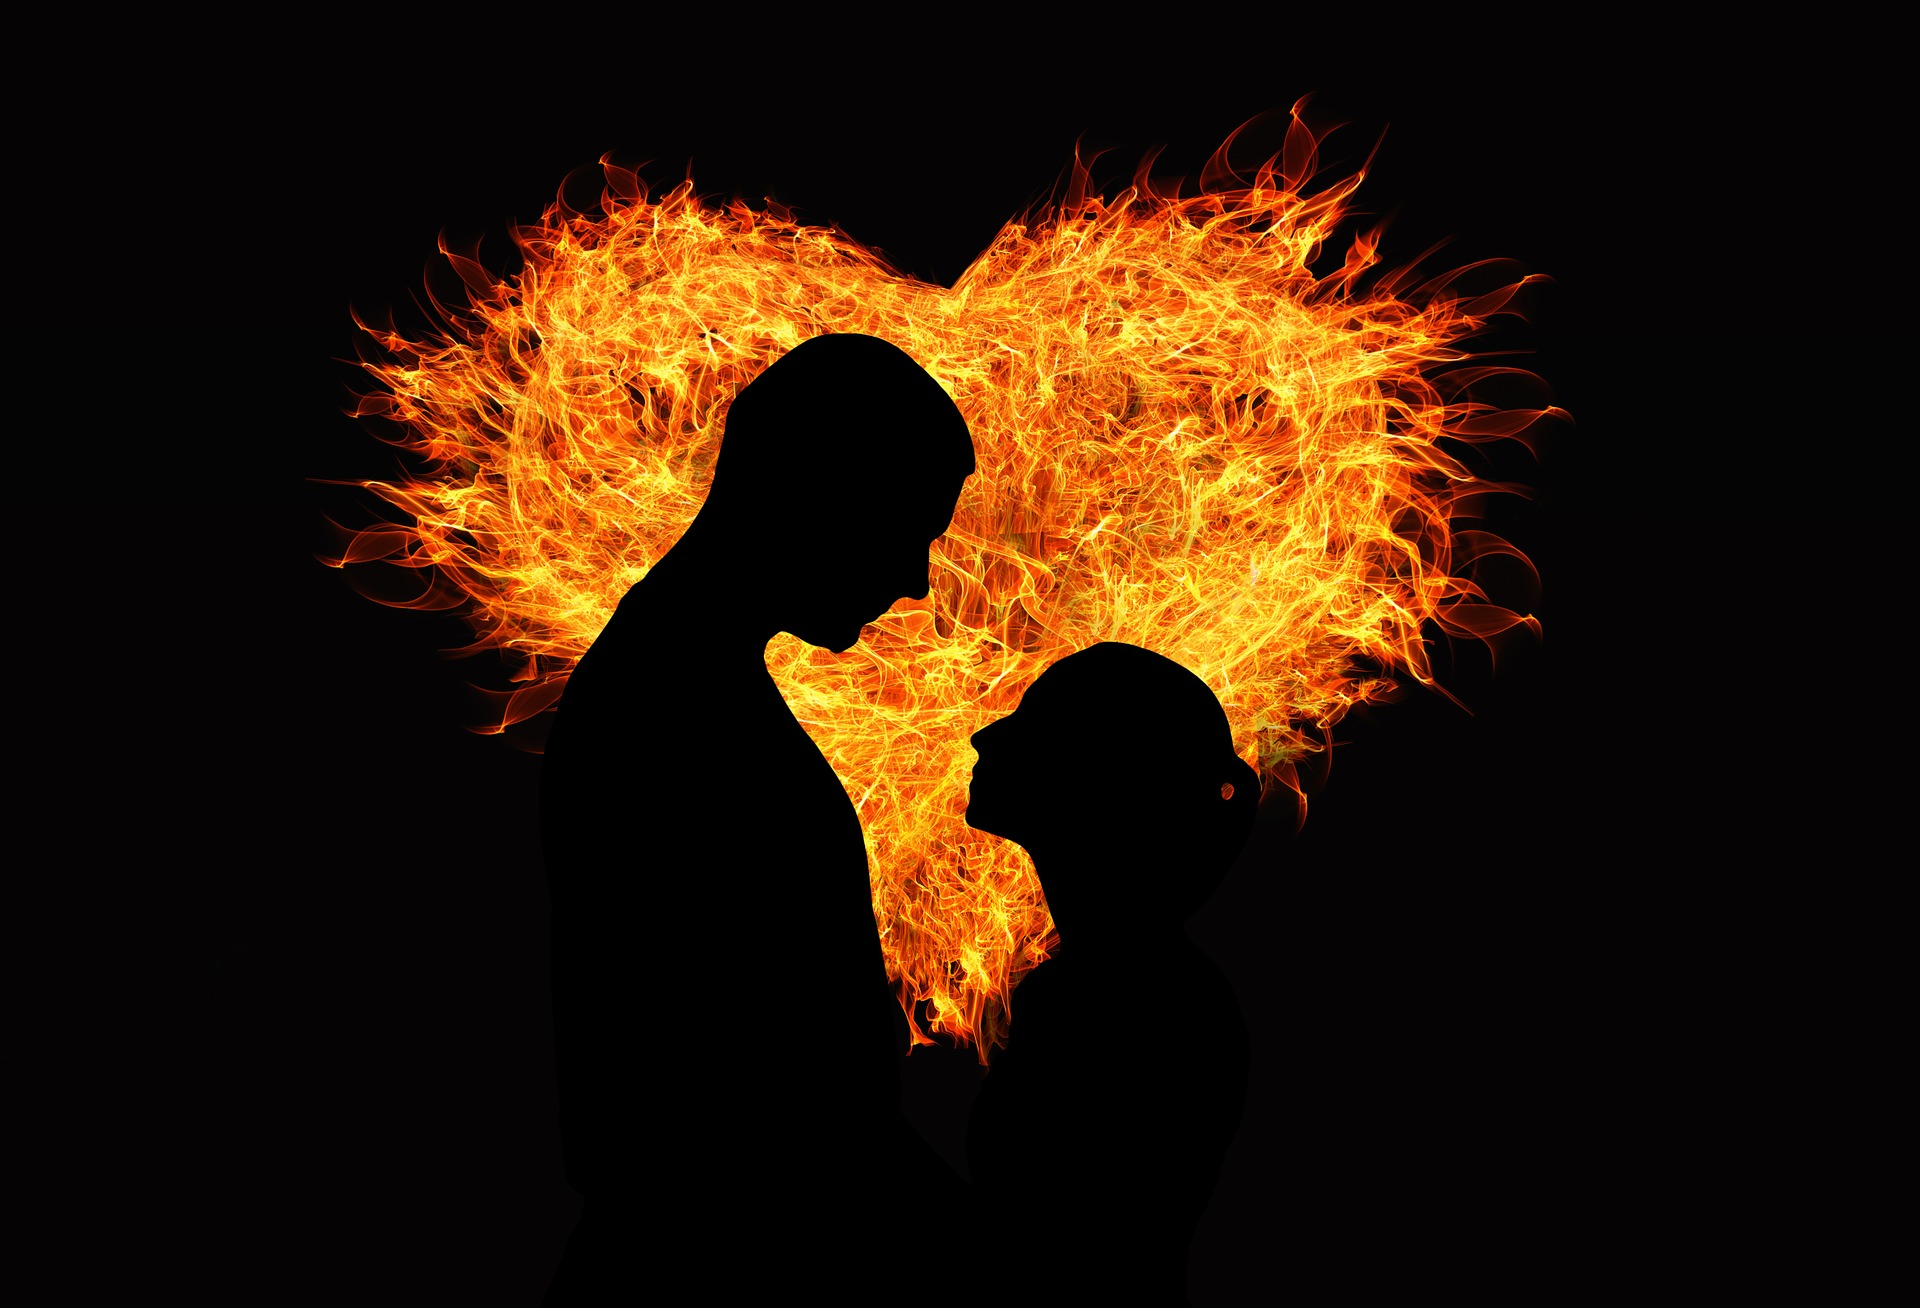 attract your wife by being loving. Demonstrate your love openly